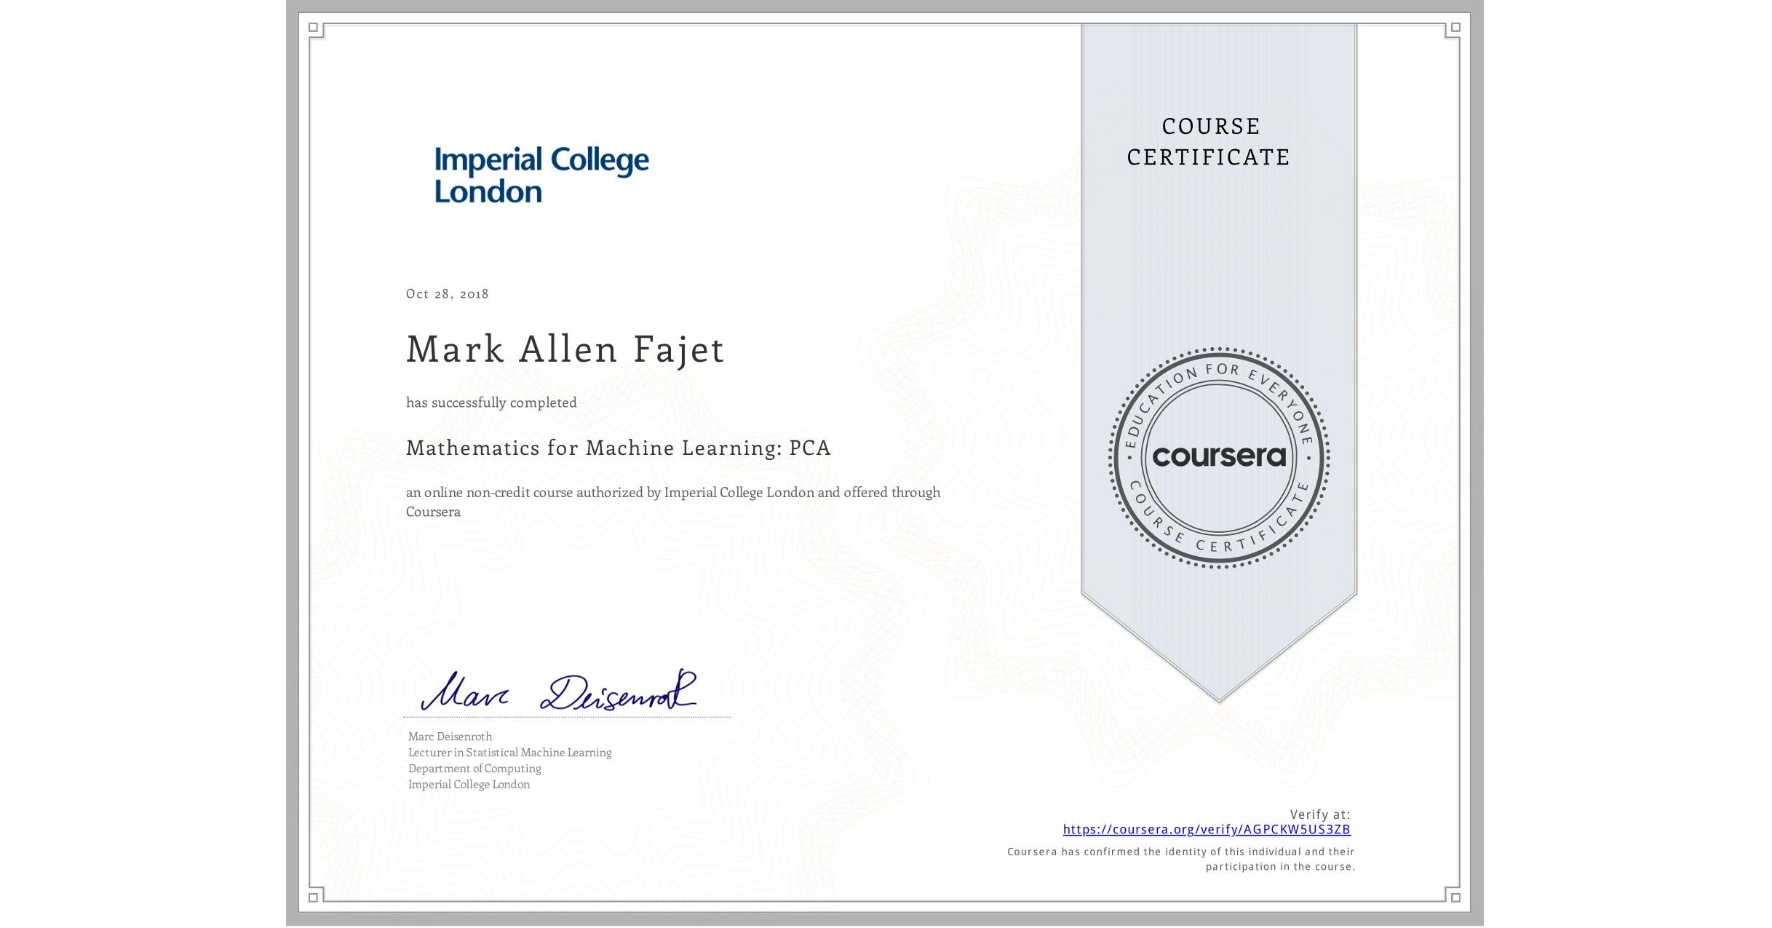 View certificate for Mark Allen Fajet, Mathematics for Machine Learning: PCA, an online non-credit course authorized by Imperial College London and offered through Coursera